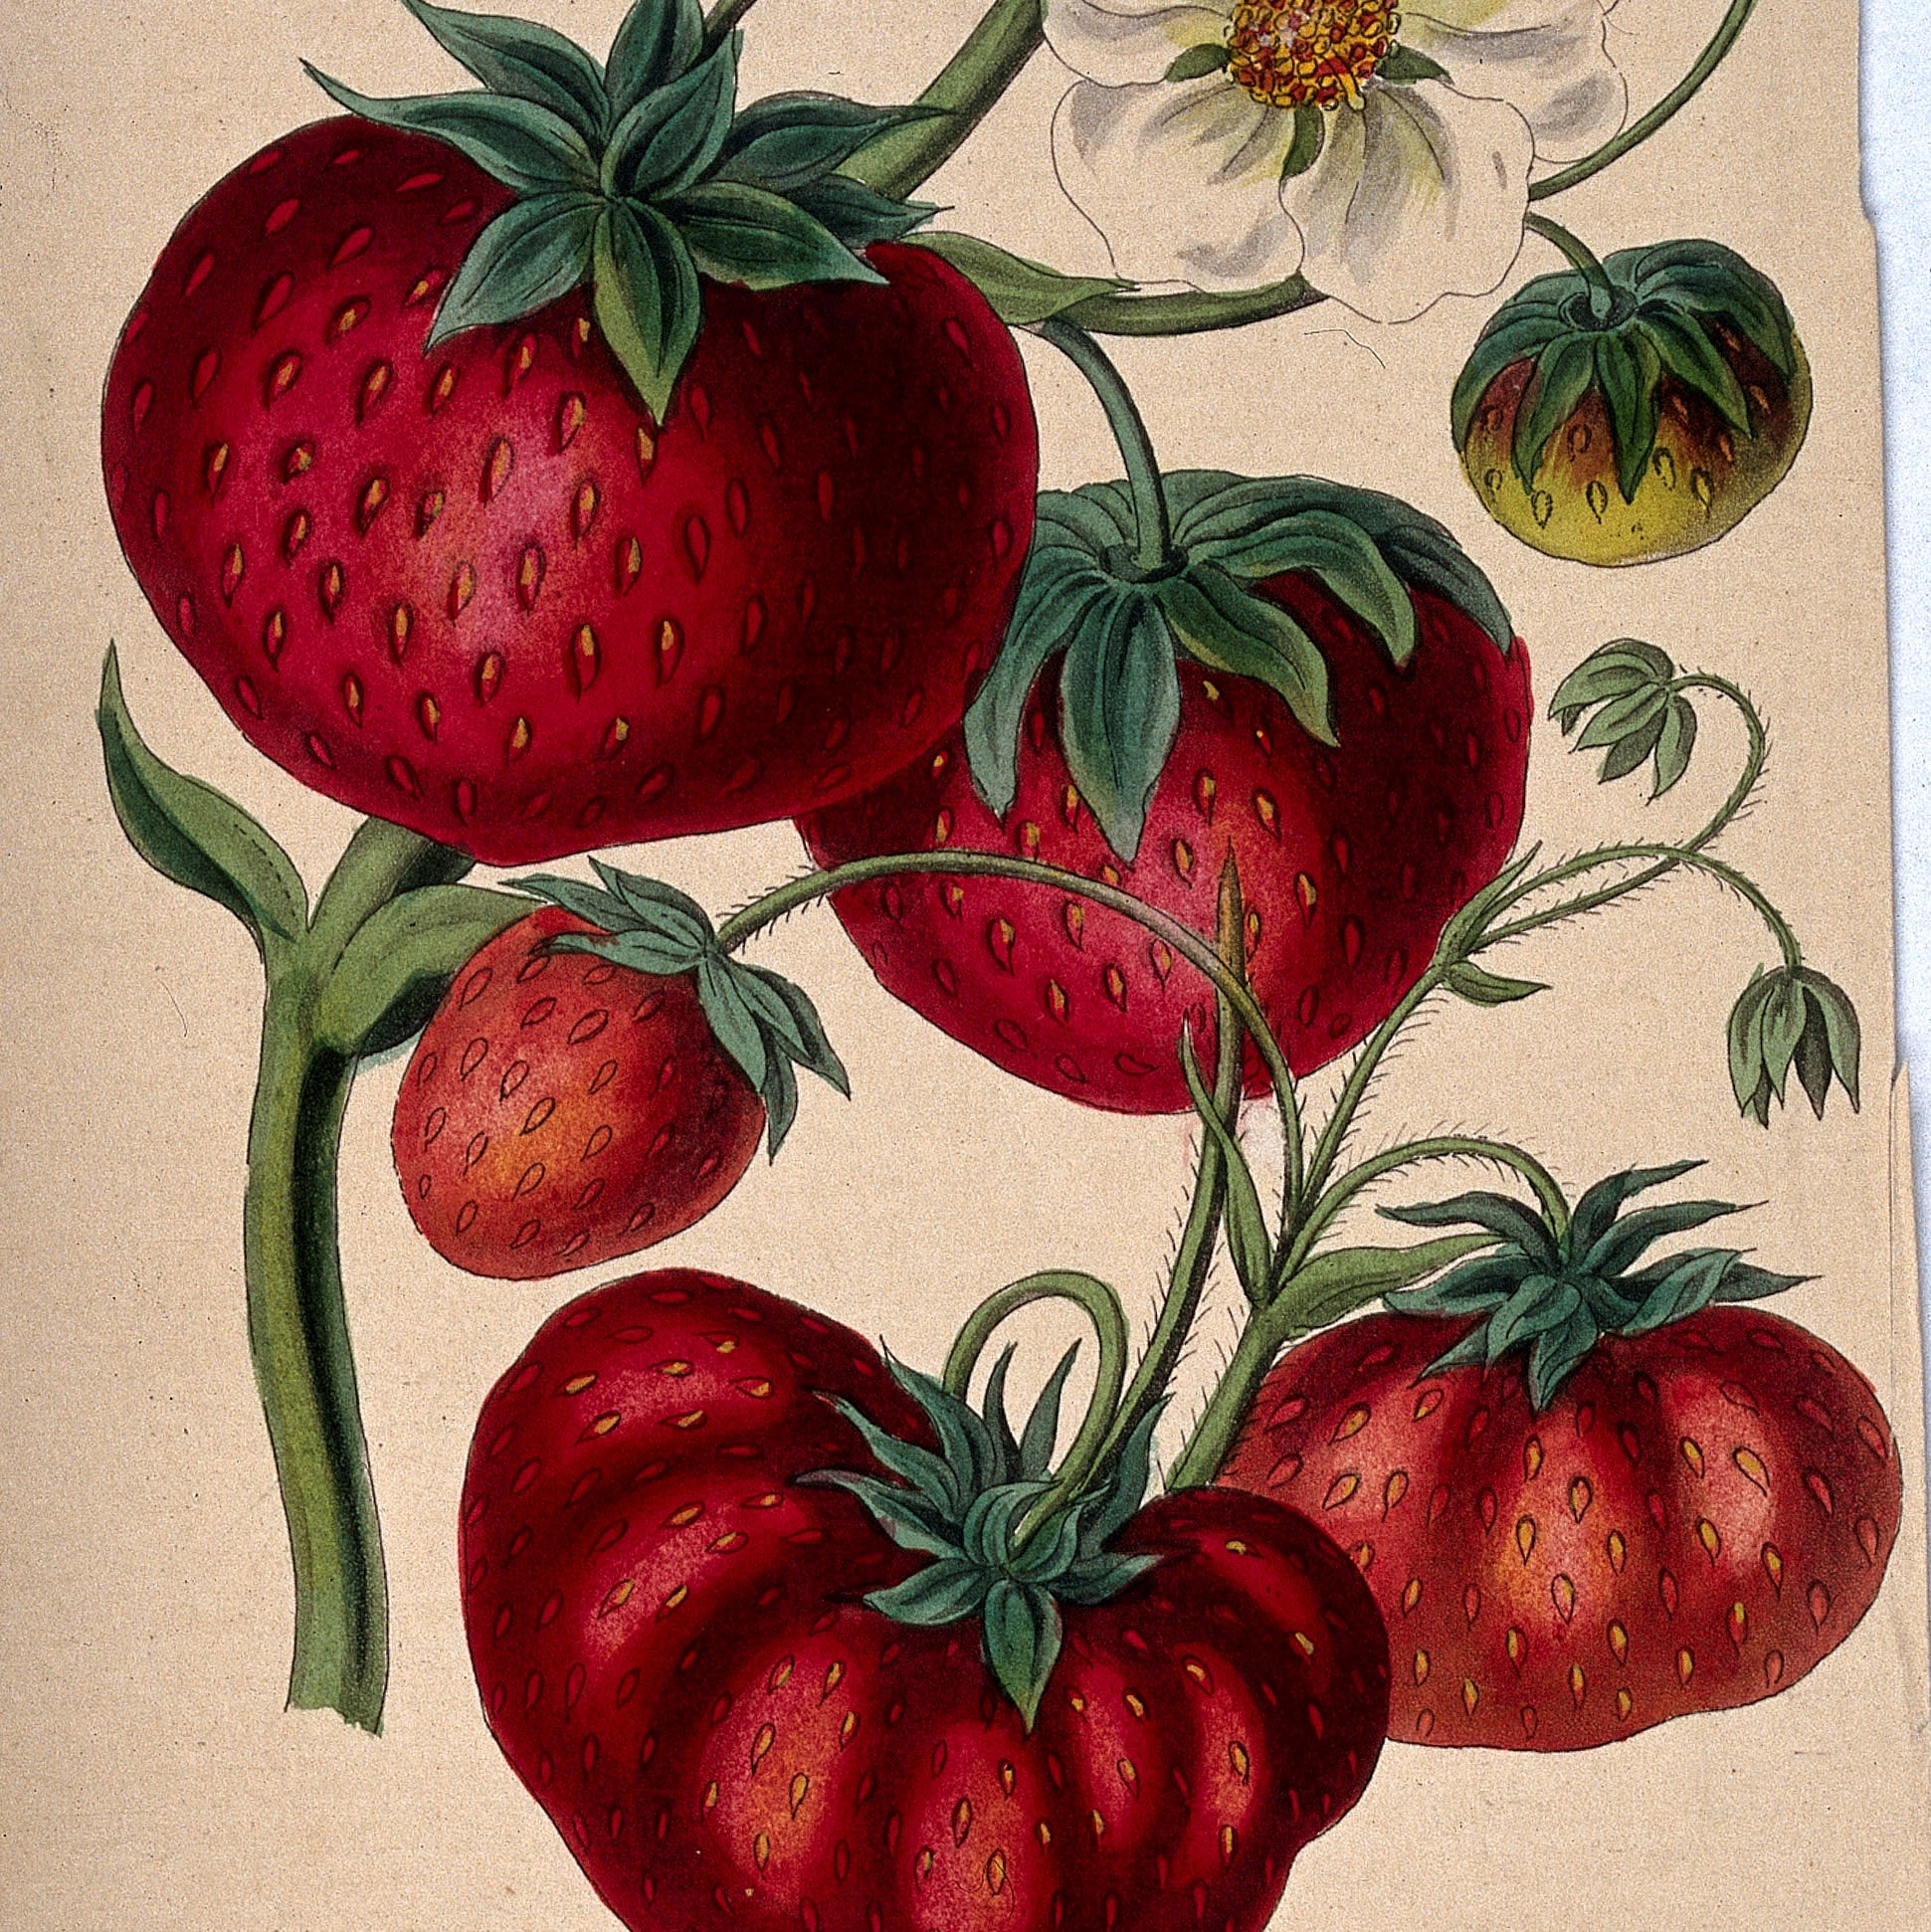 This image shows examples of the fruit and flowers of fragaria cultivars, or strawberry plants.